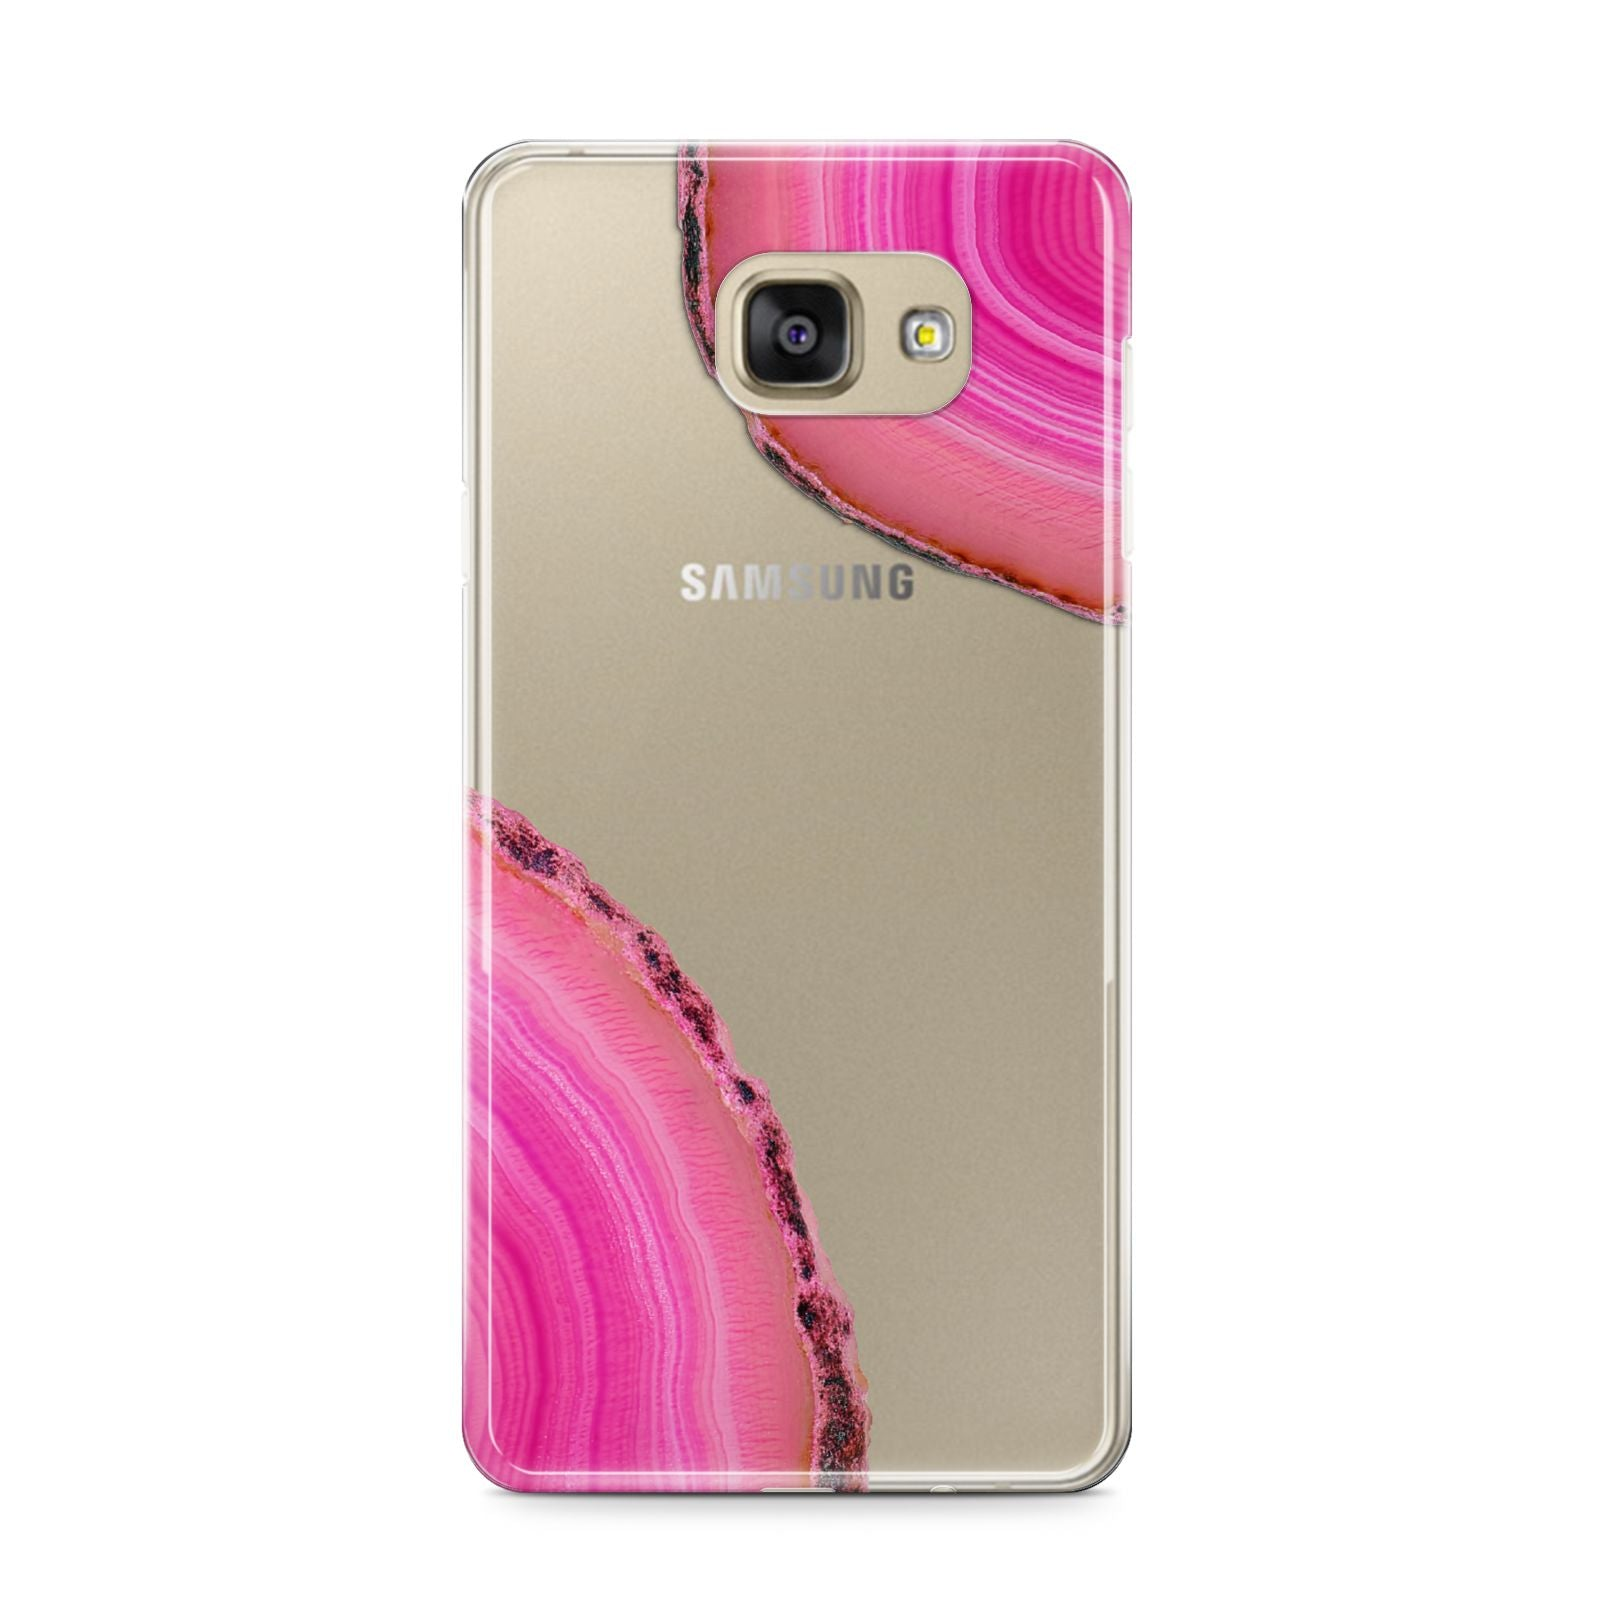 Agate Bright Pink Samsung Galaxy A9 2016 Case on gold phone